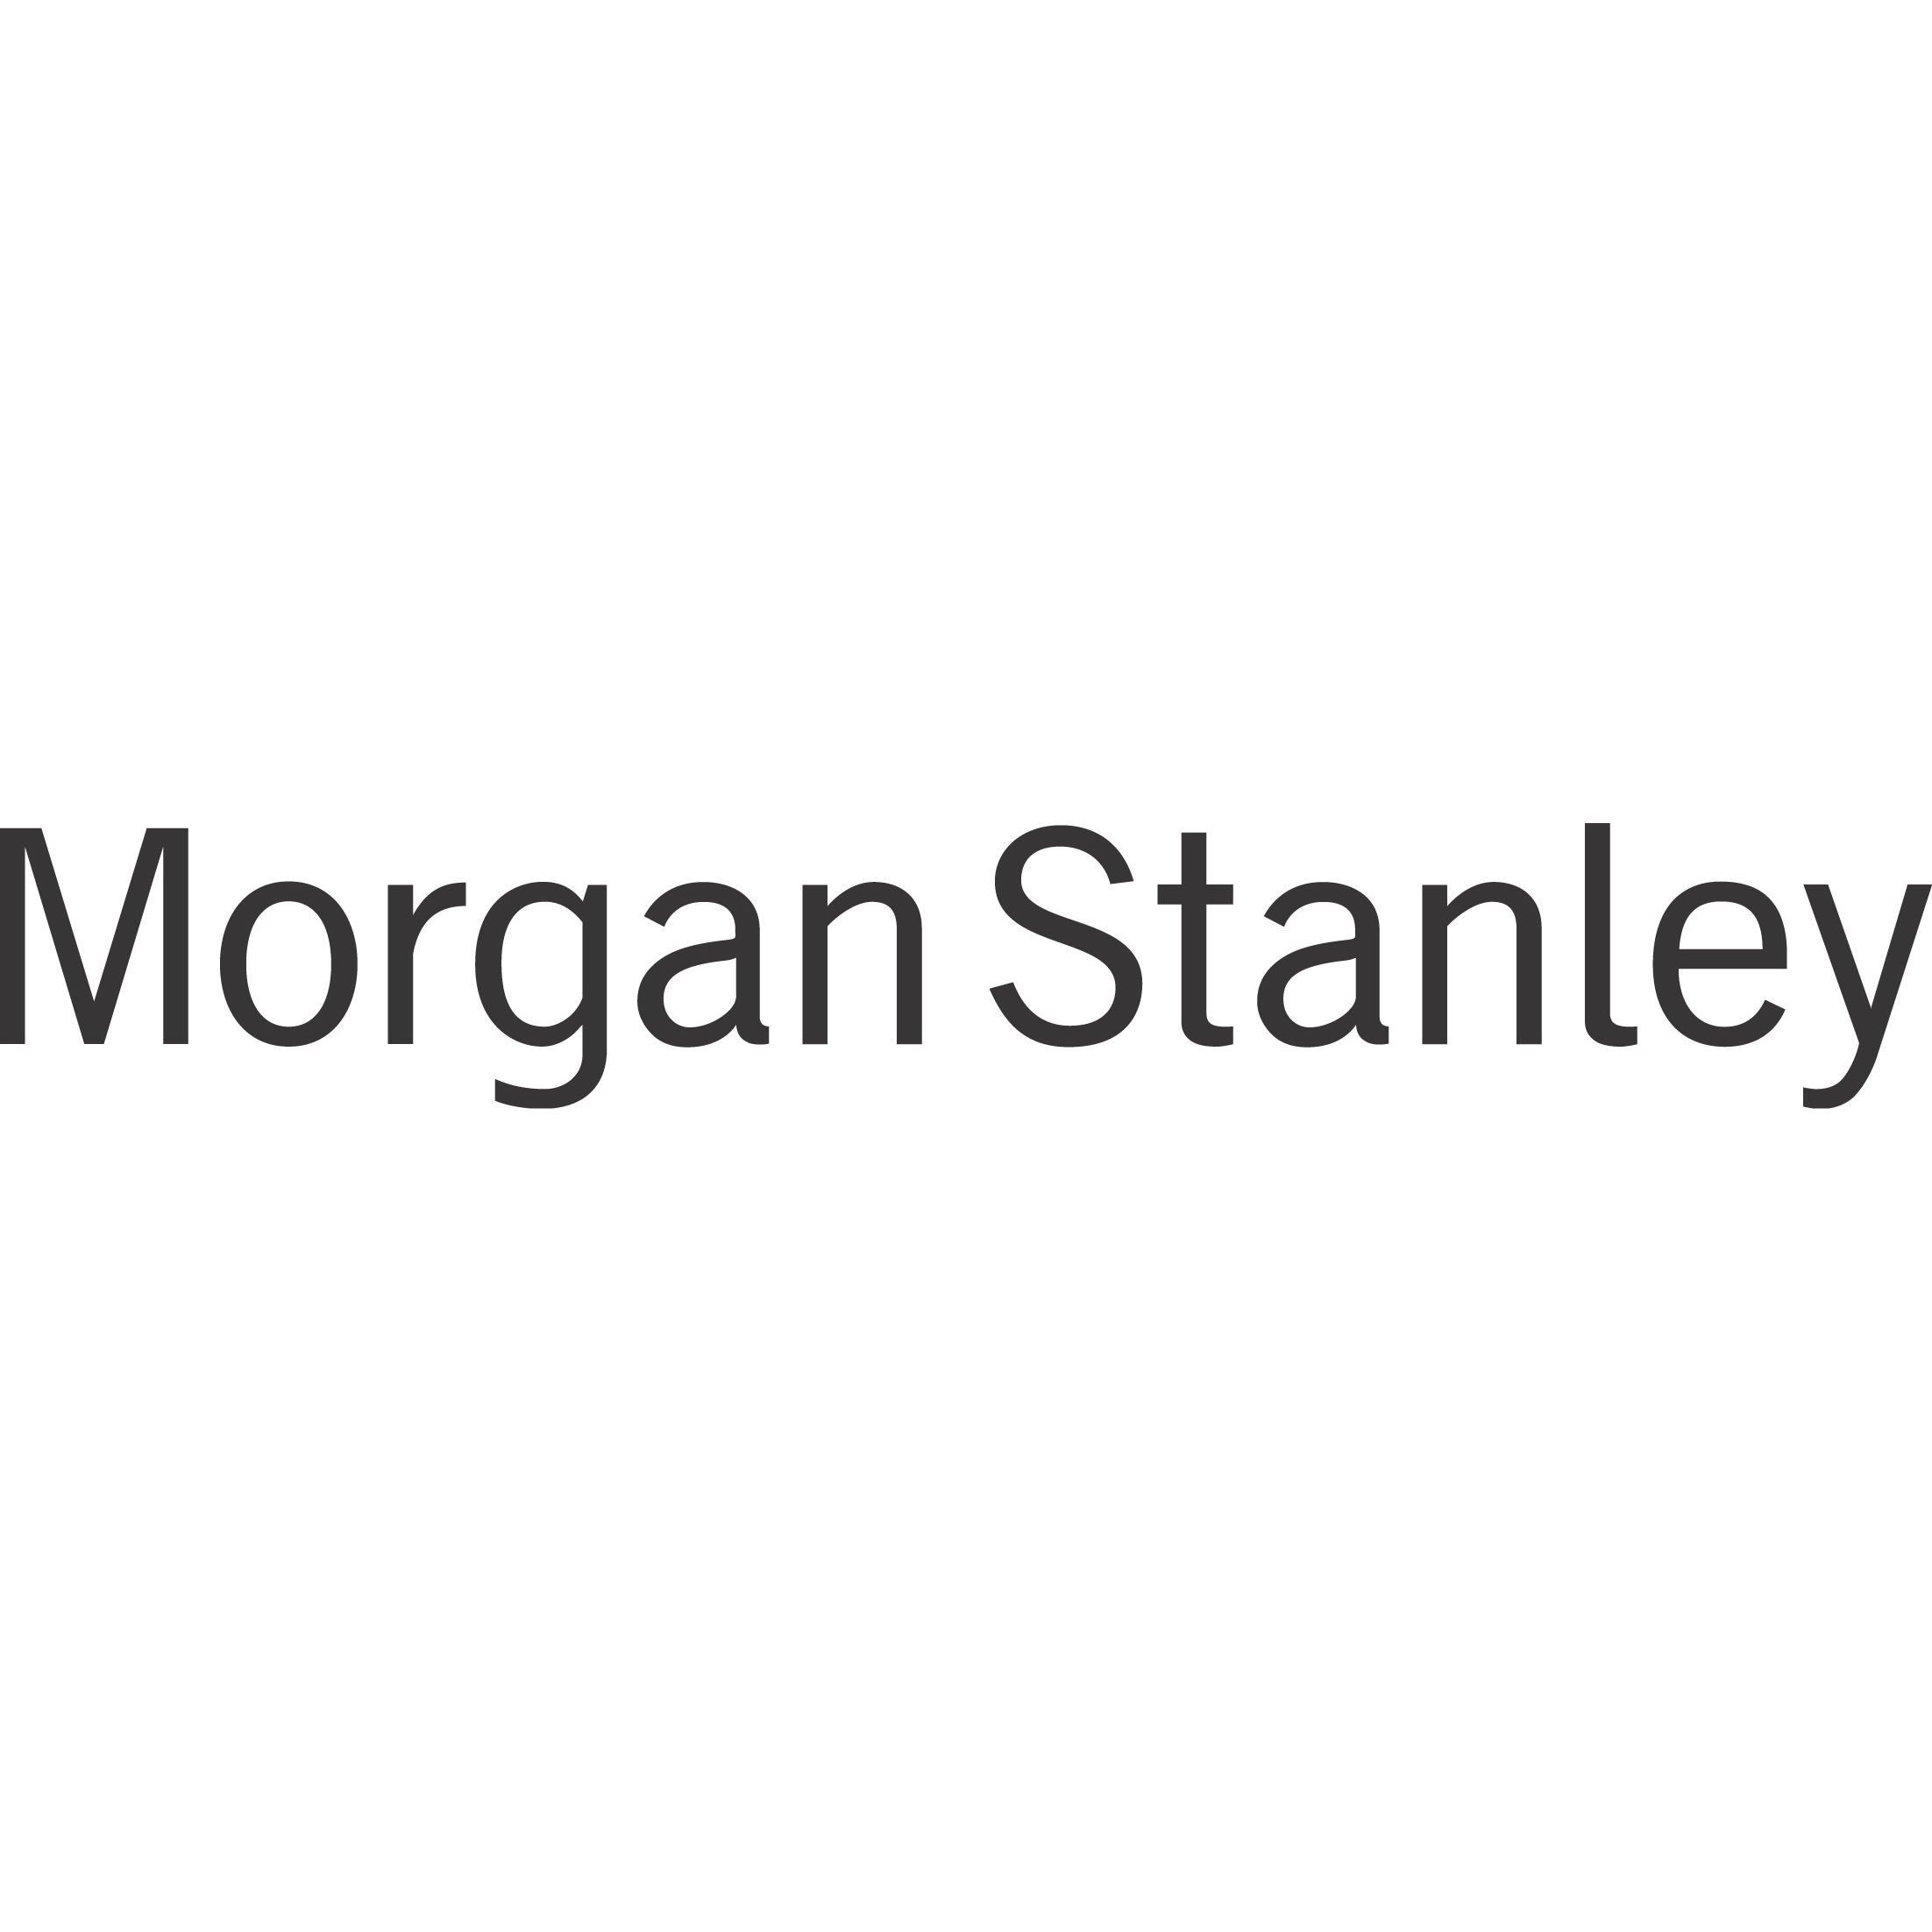 Jennifer Dallas - Morgan Stanley | Financial Advisor in Barrington,Illinois